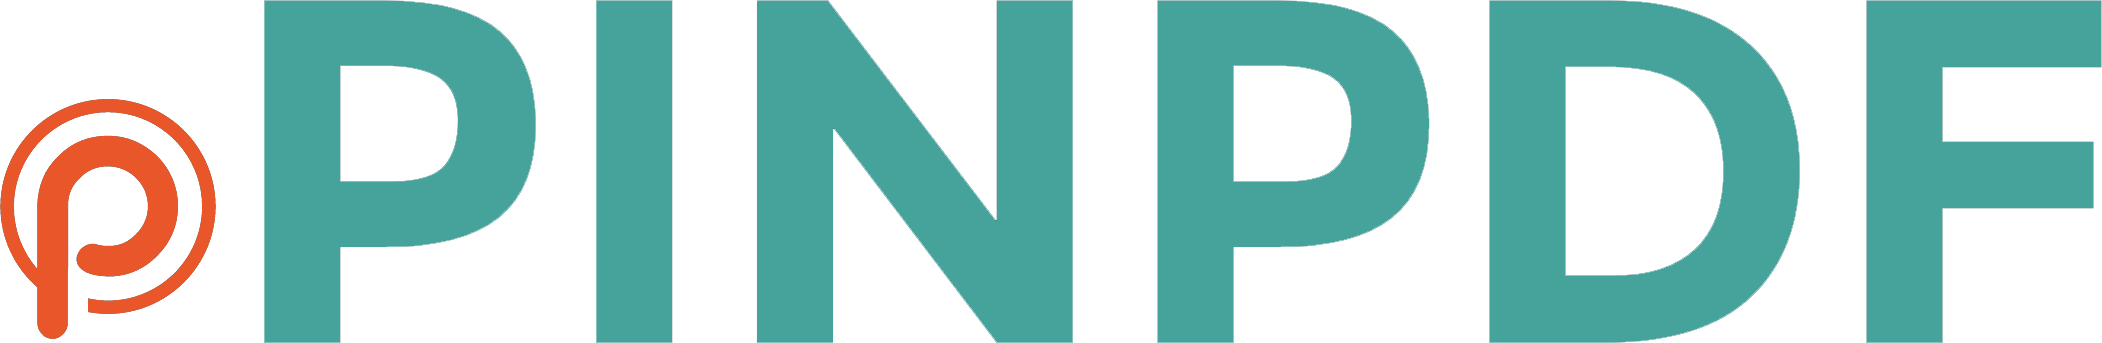 Boreal Climbing Shoes Womens Lightweight Apache Gris 7 5 Grey 44855   B019CS4DH6